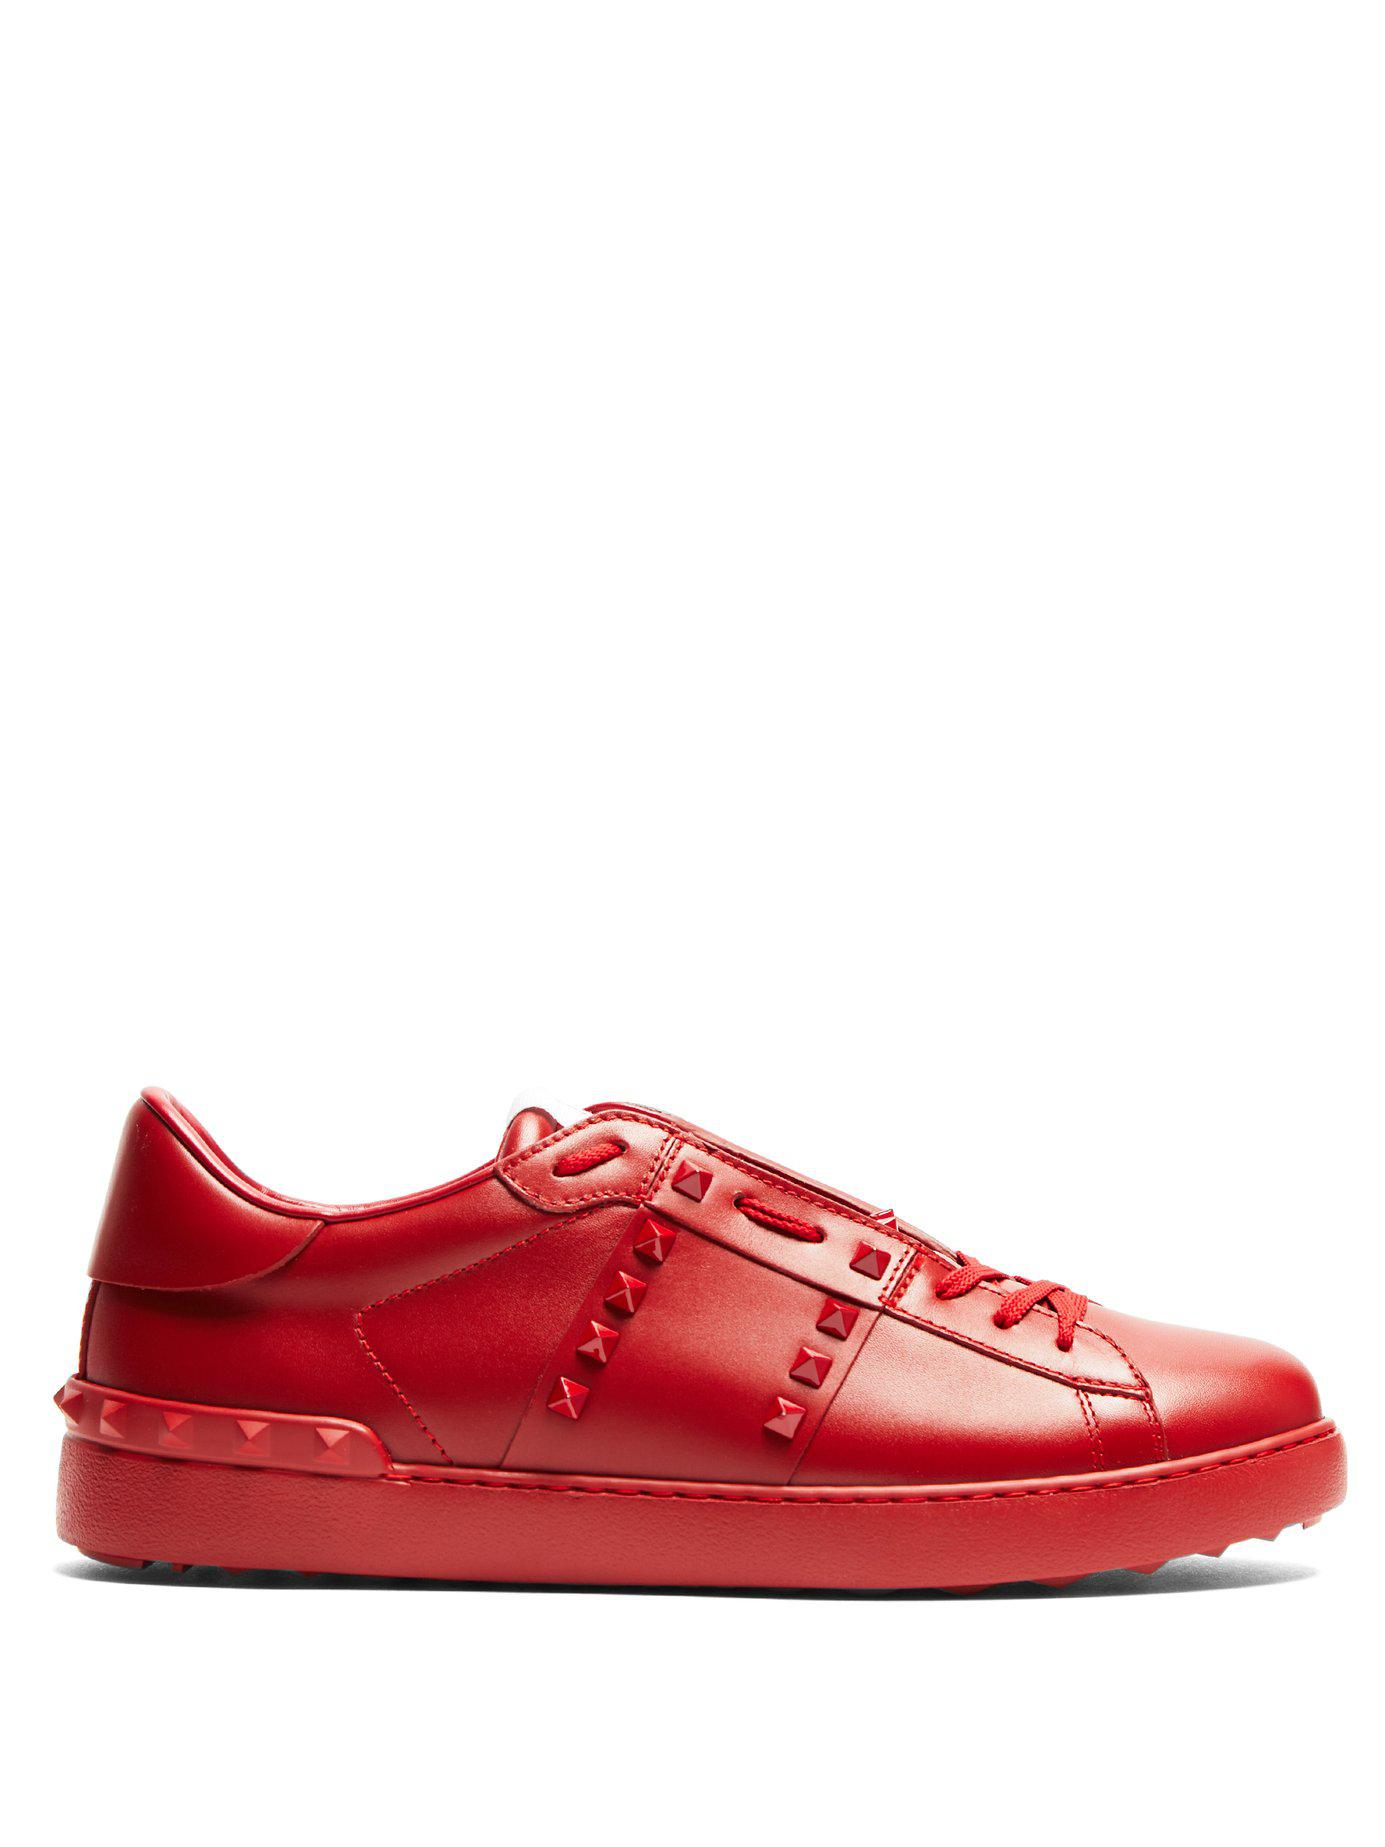 210a609354a2 Lyst - Valentino Shoes Leather Trainers Sneakers Rockstud in Red for ...